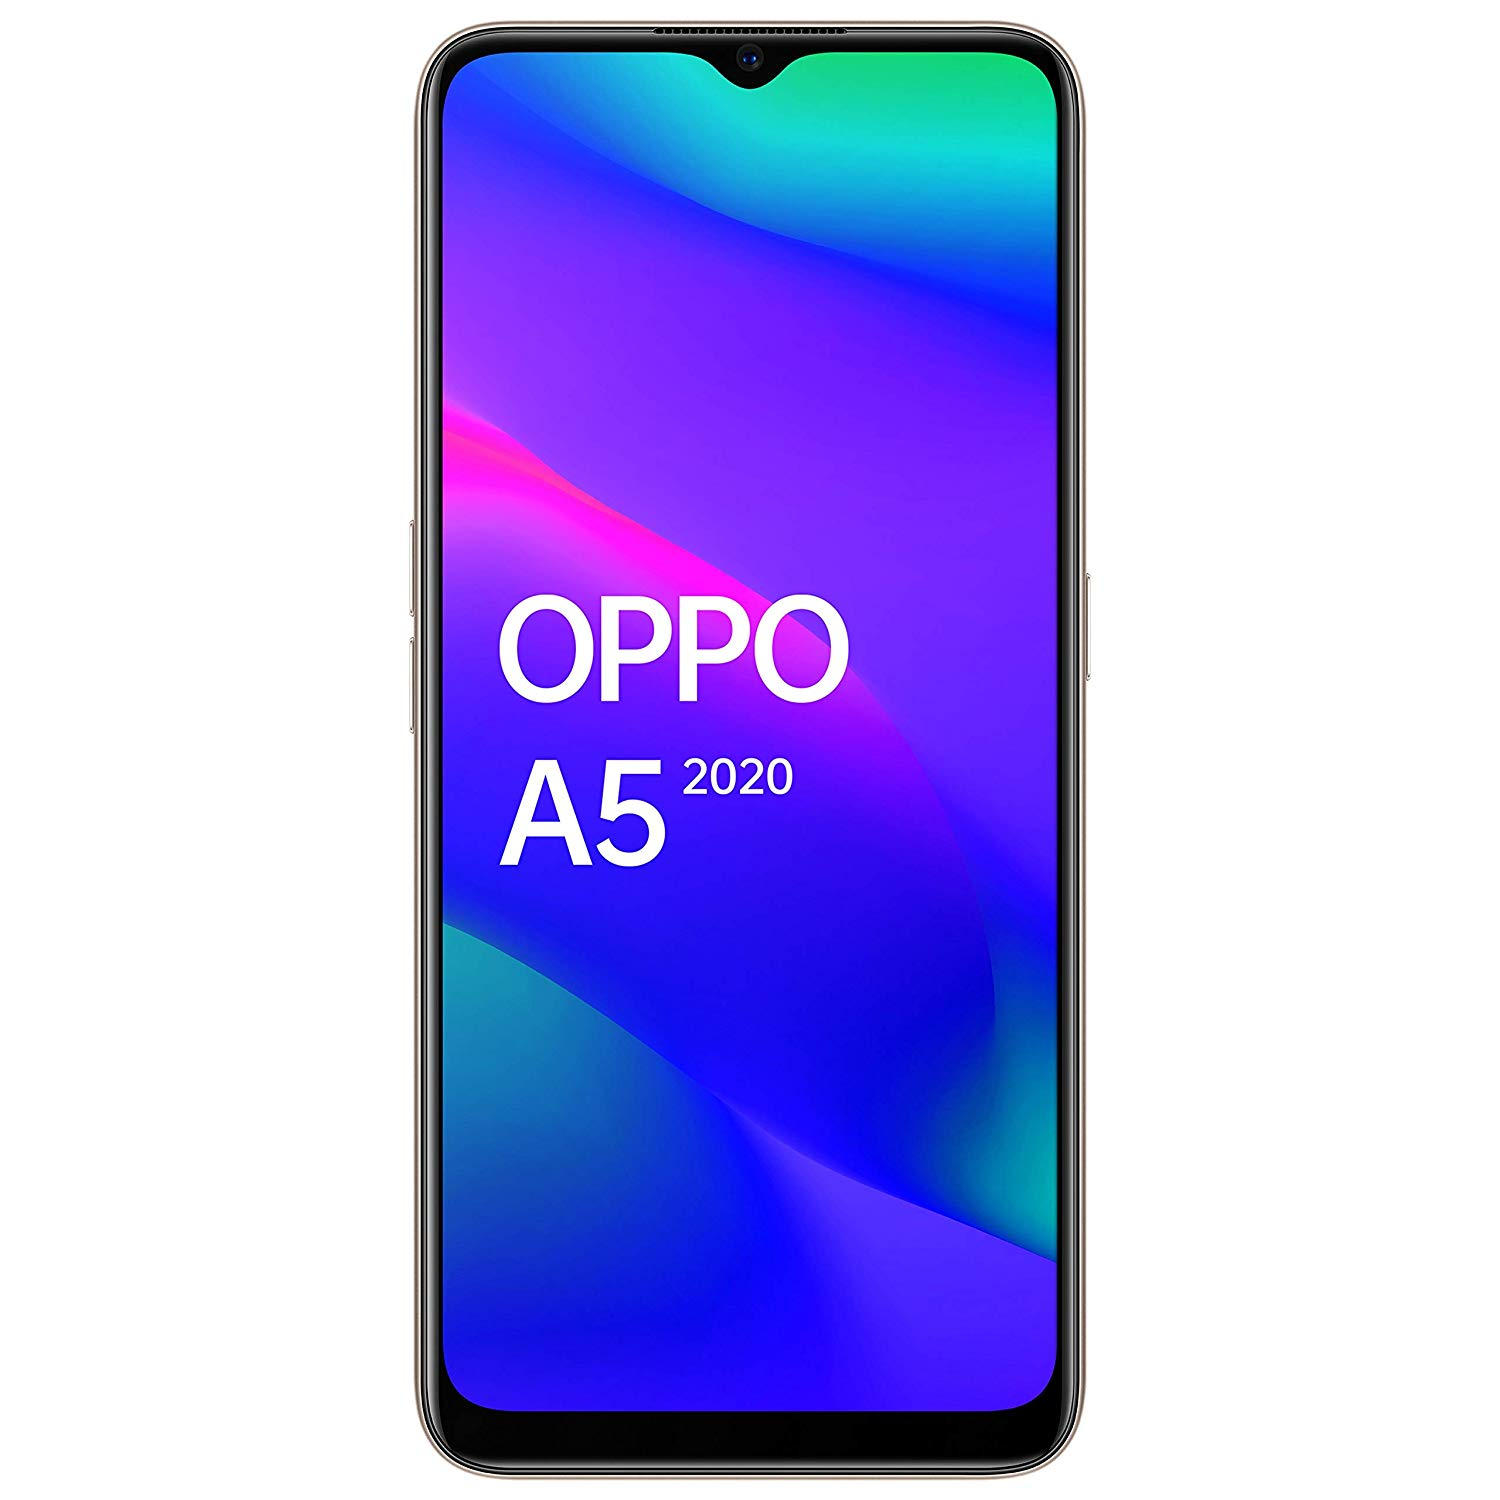 Oppo A5 2020 Image